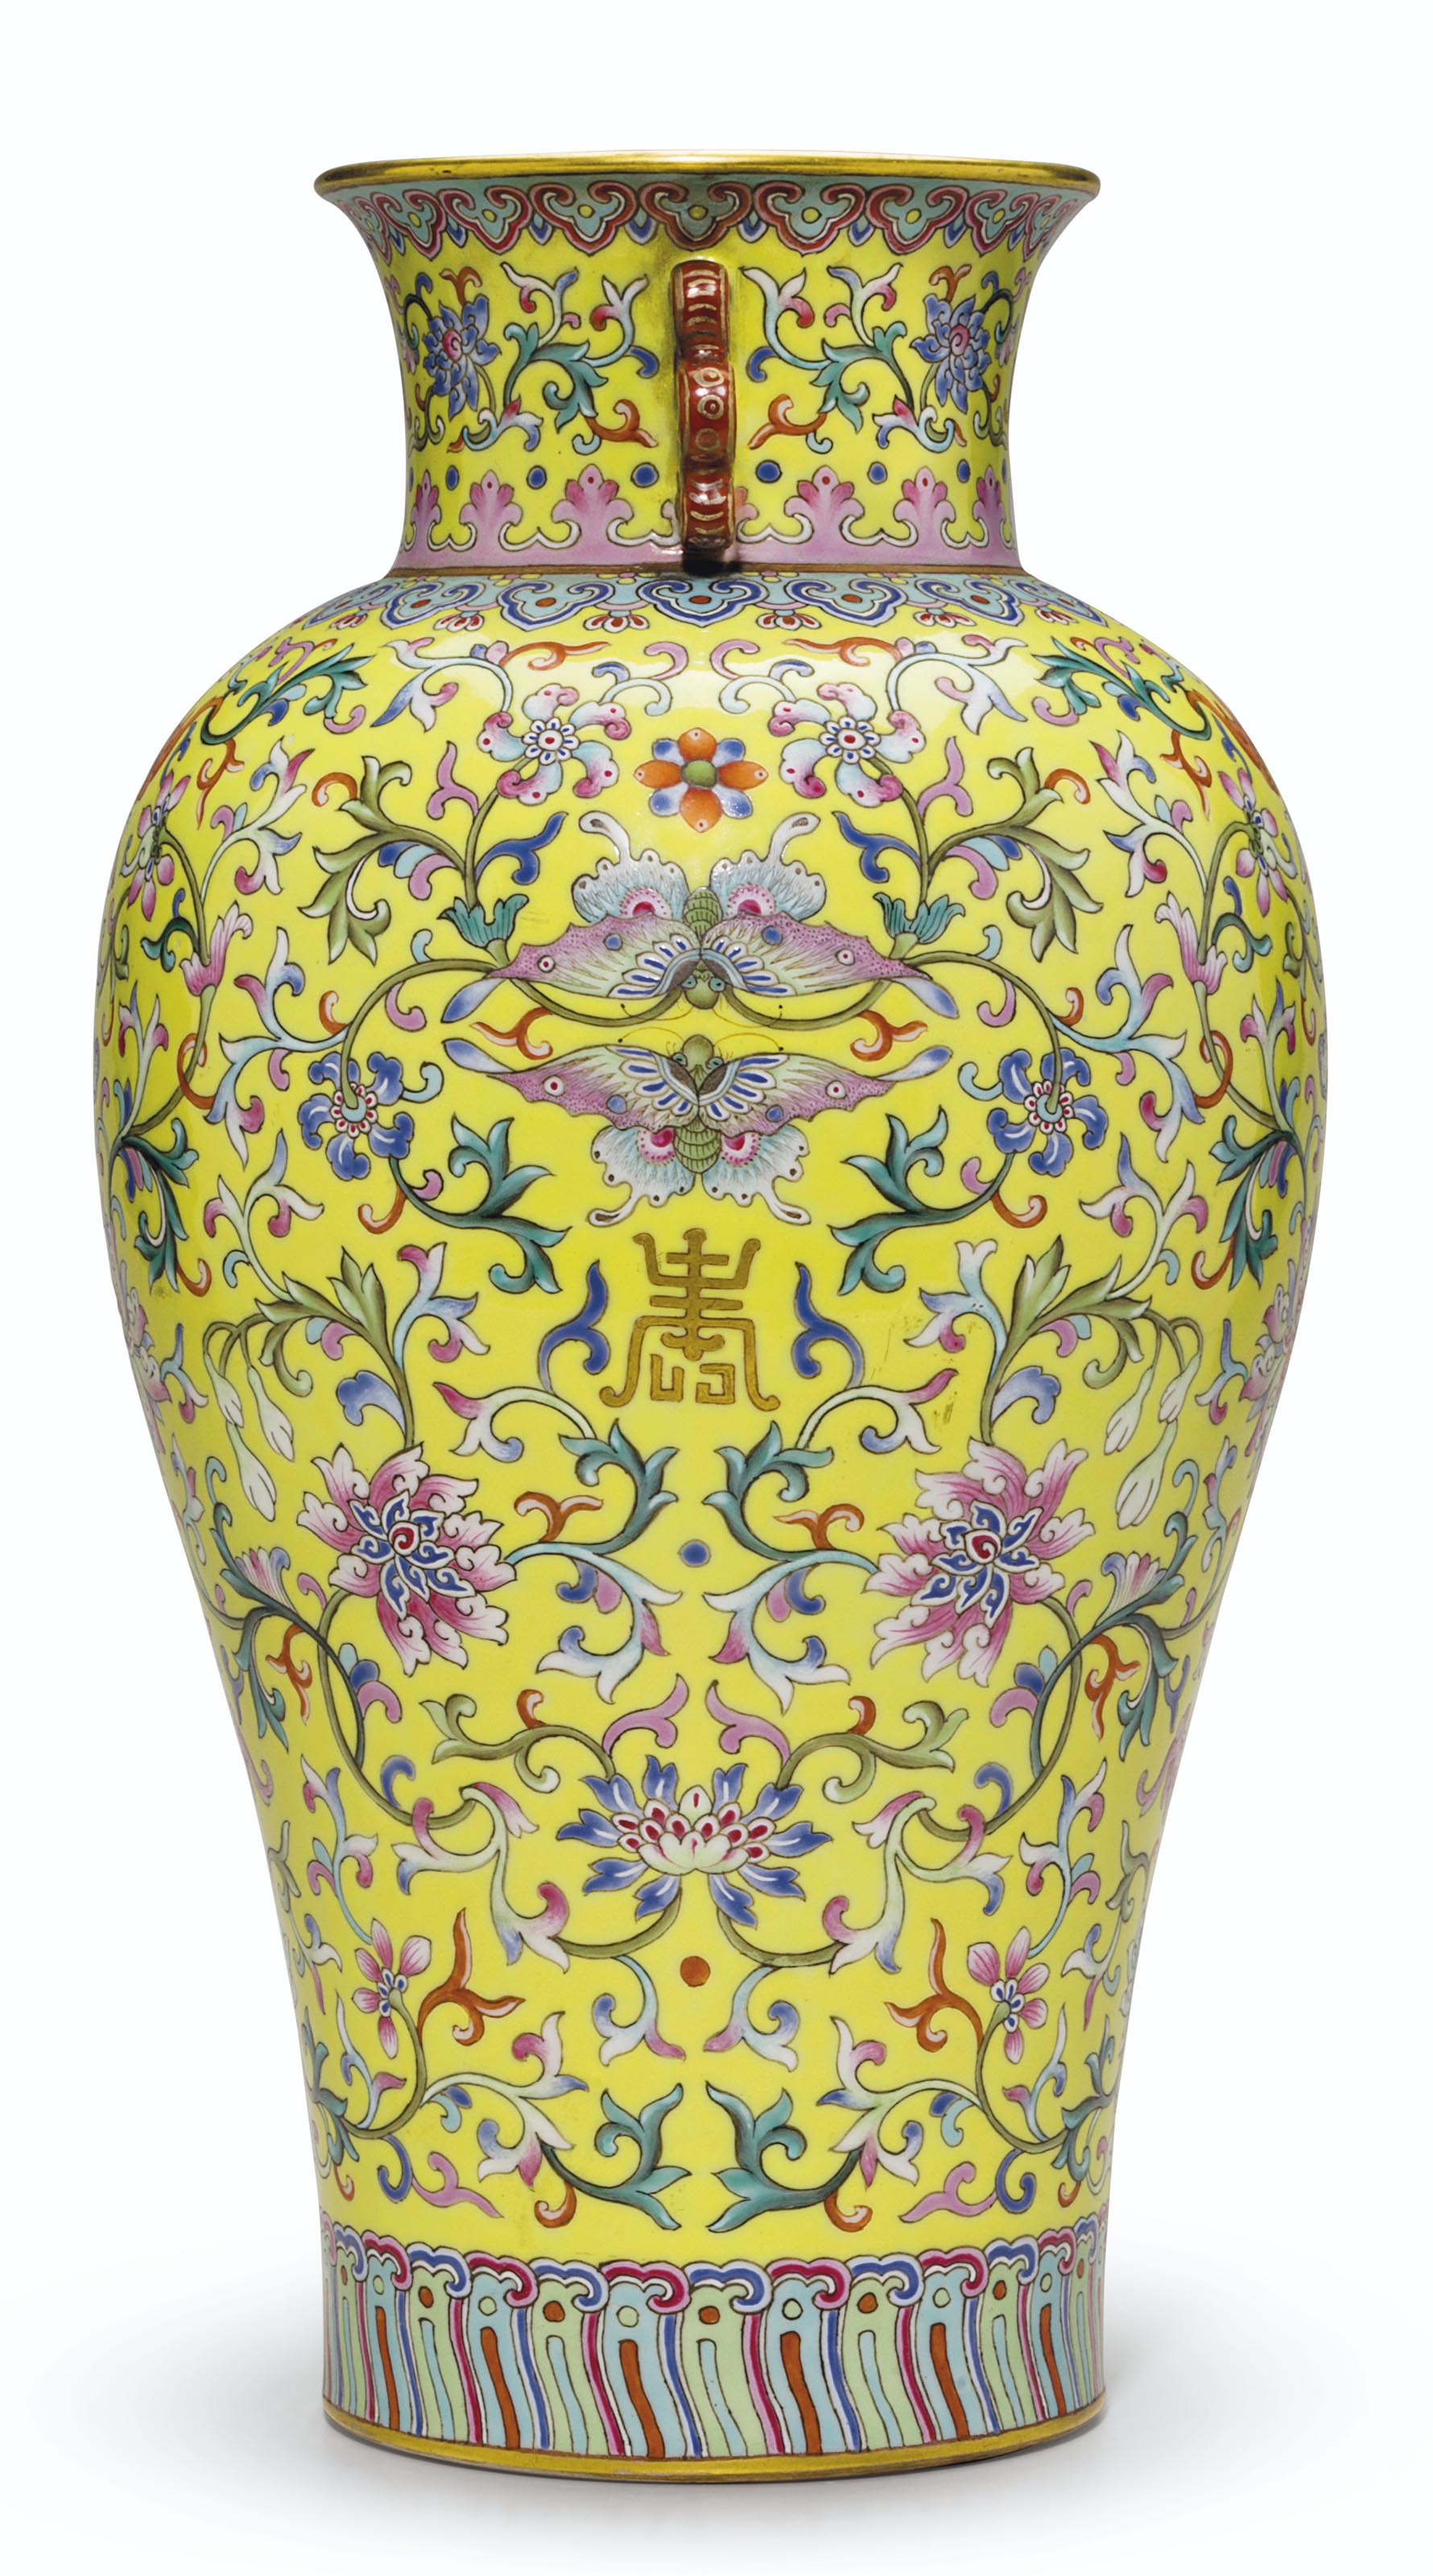 A VERY RARE AND SUPERBLY ENAMELED PAIR OF YELLOW-GROUND FAMILLE ROSE VASES